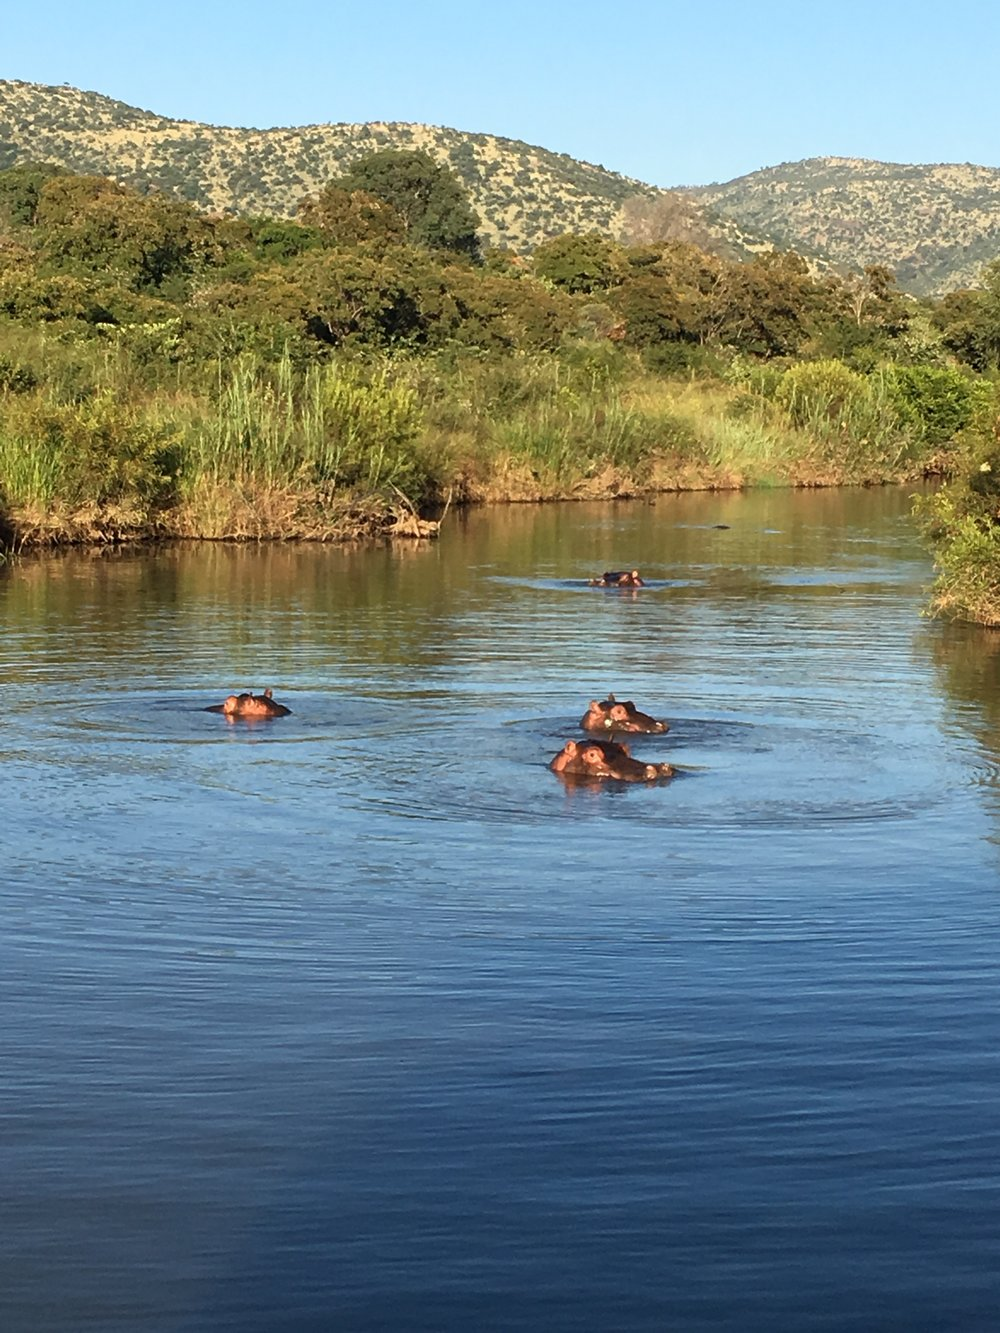 Hippos swimming close to our safari car out of curiosity.JPG